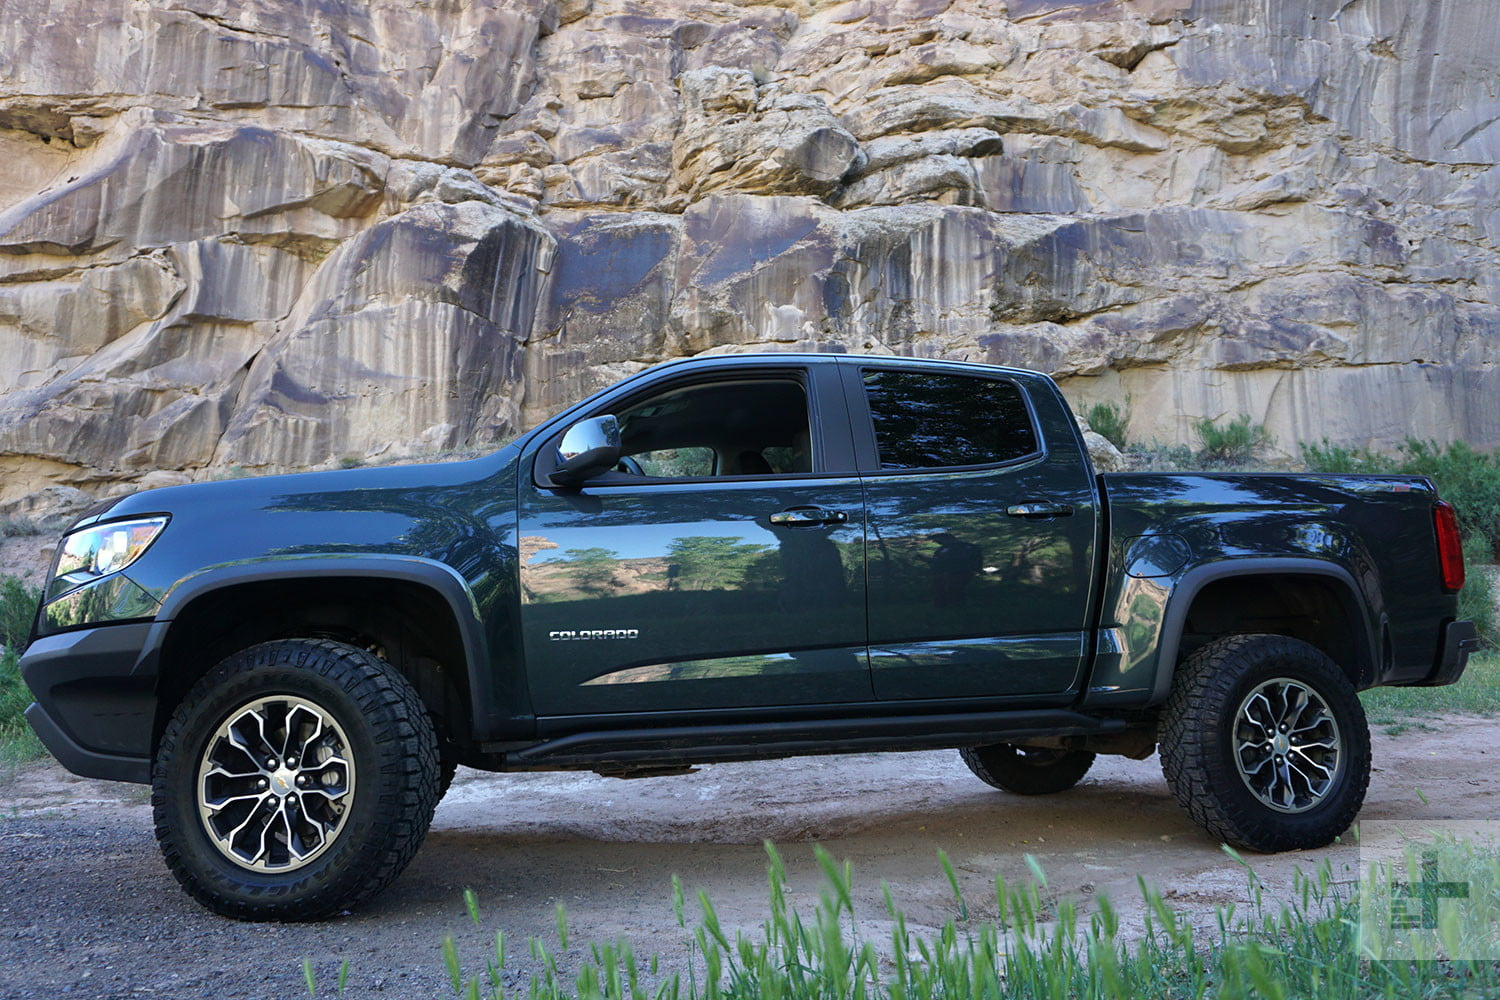 2017 chevrolet colorado zr2 offers off road capability and street manners digital trends. Black Bedroom Furniture Sets. Home Design Ideas